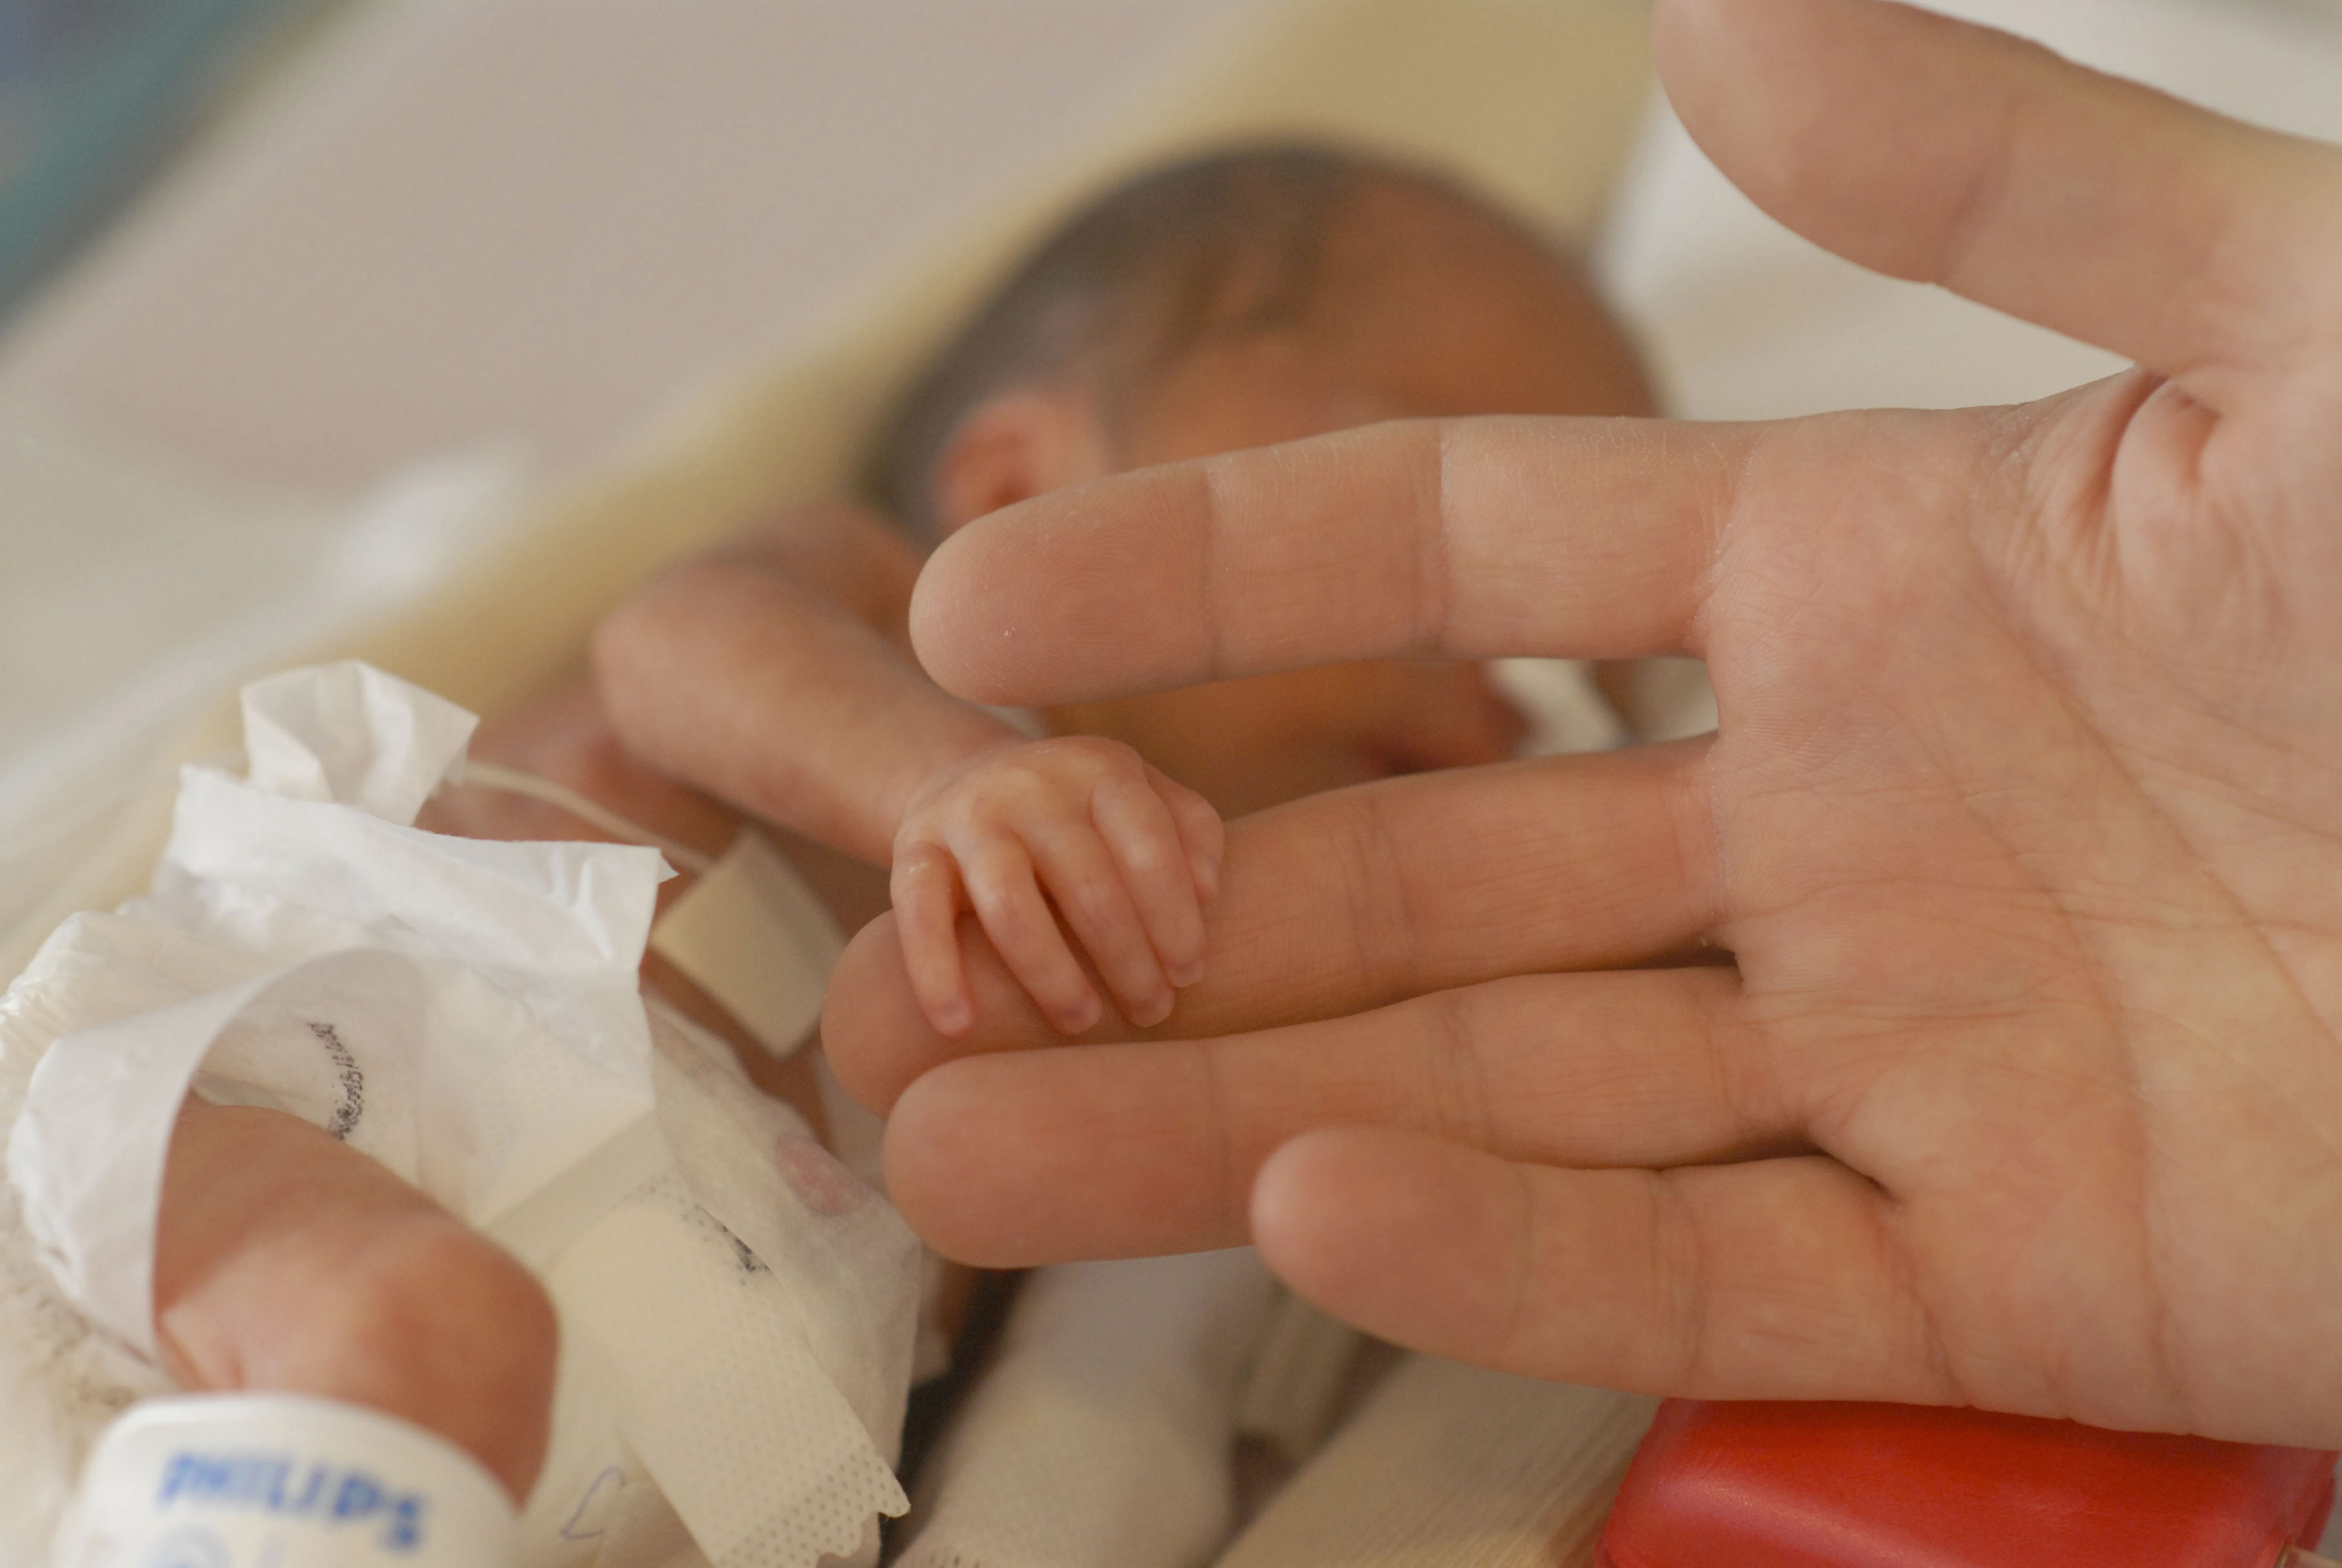 Preemies' Survival Rates Improve, But Many Challenges Remain